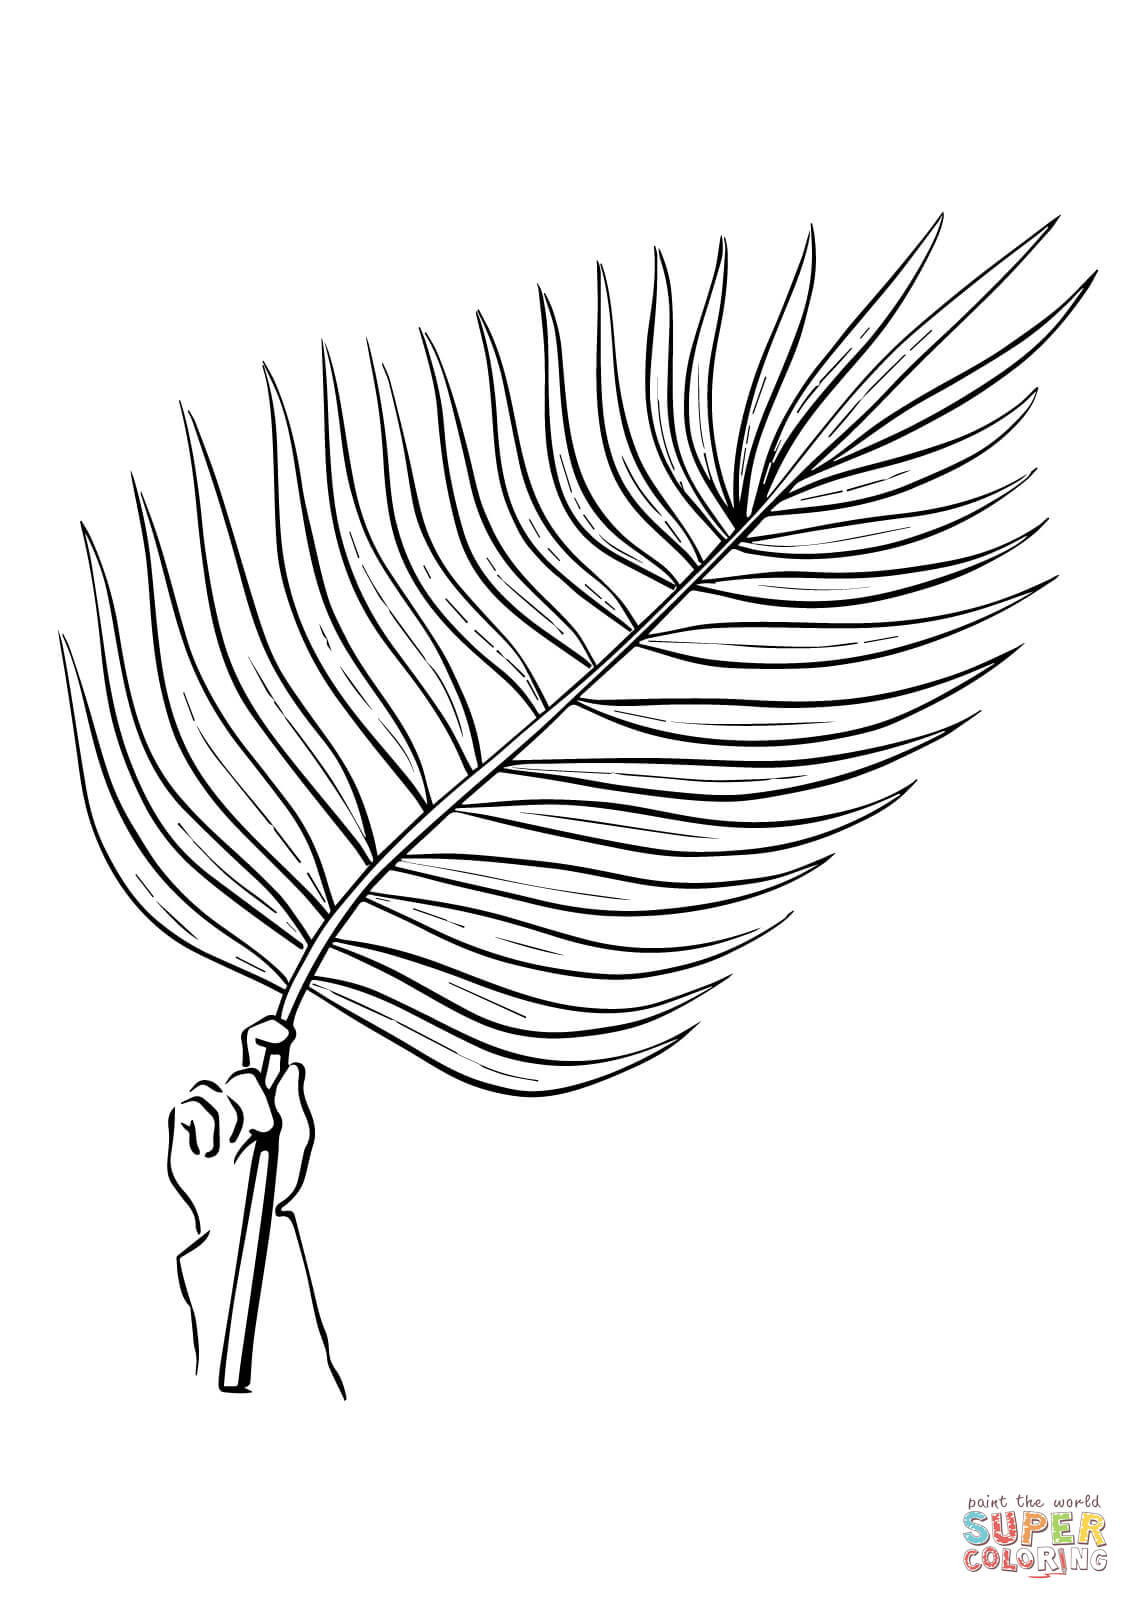 Palm Sunday - Bible Coloring Pages   Sunday school coloring pages ...   1600x1131